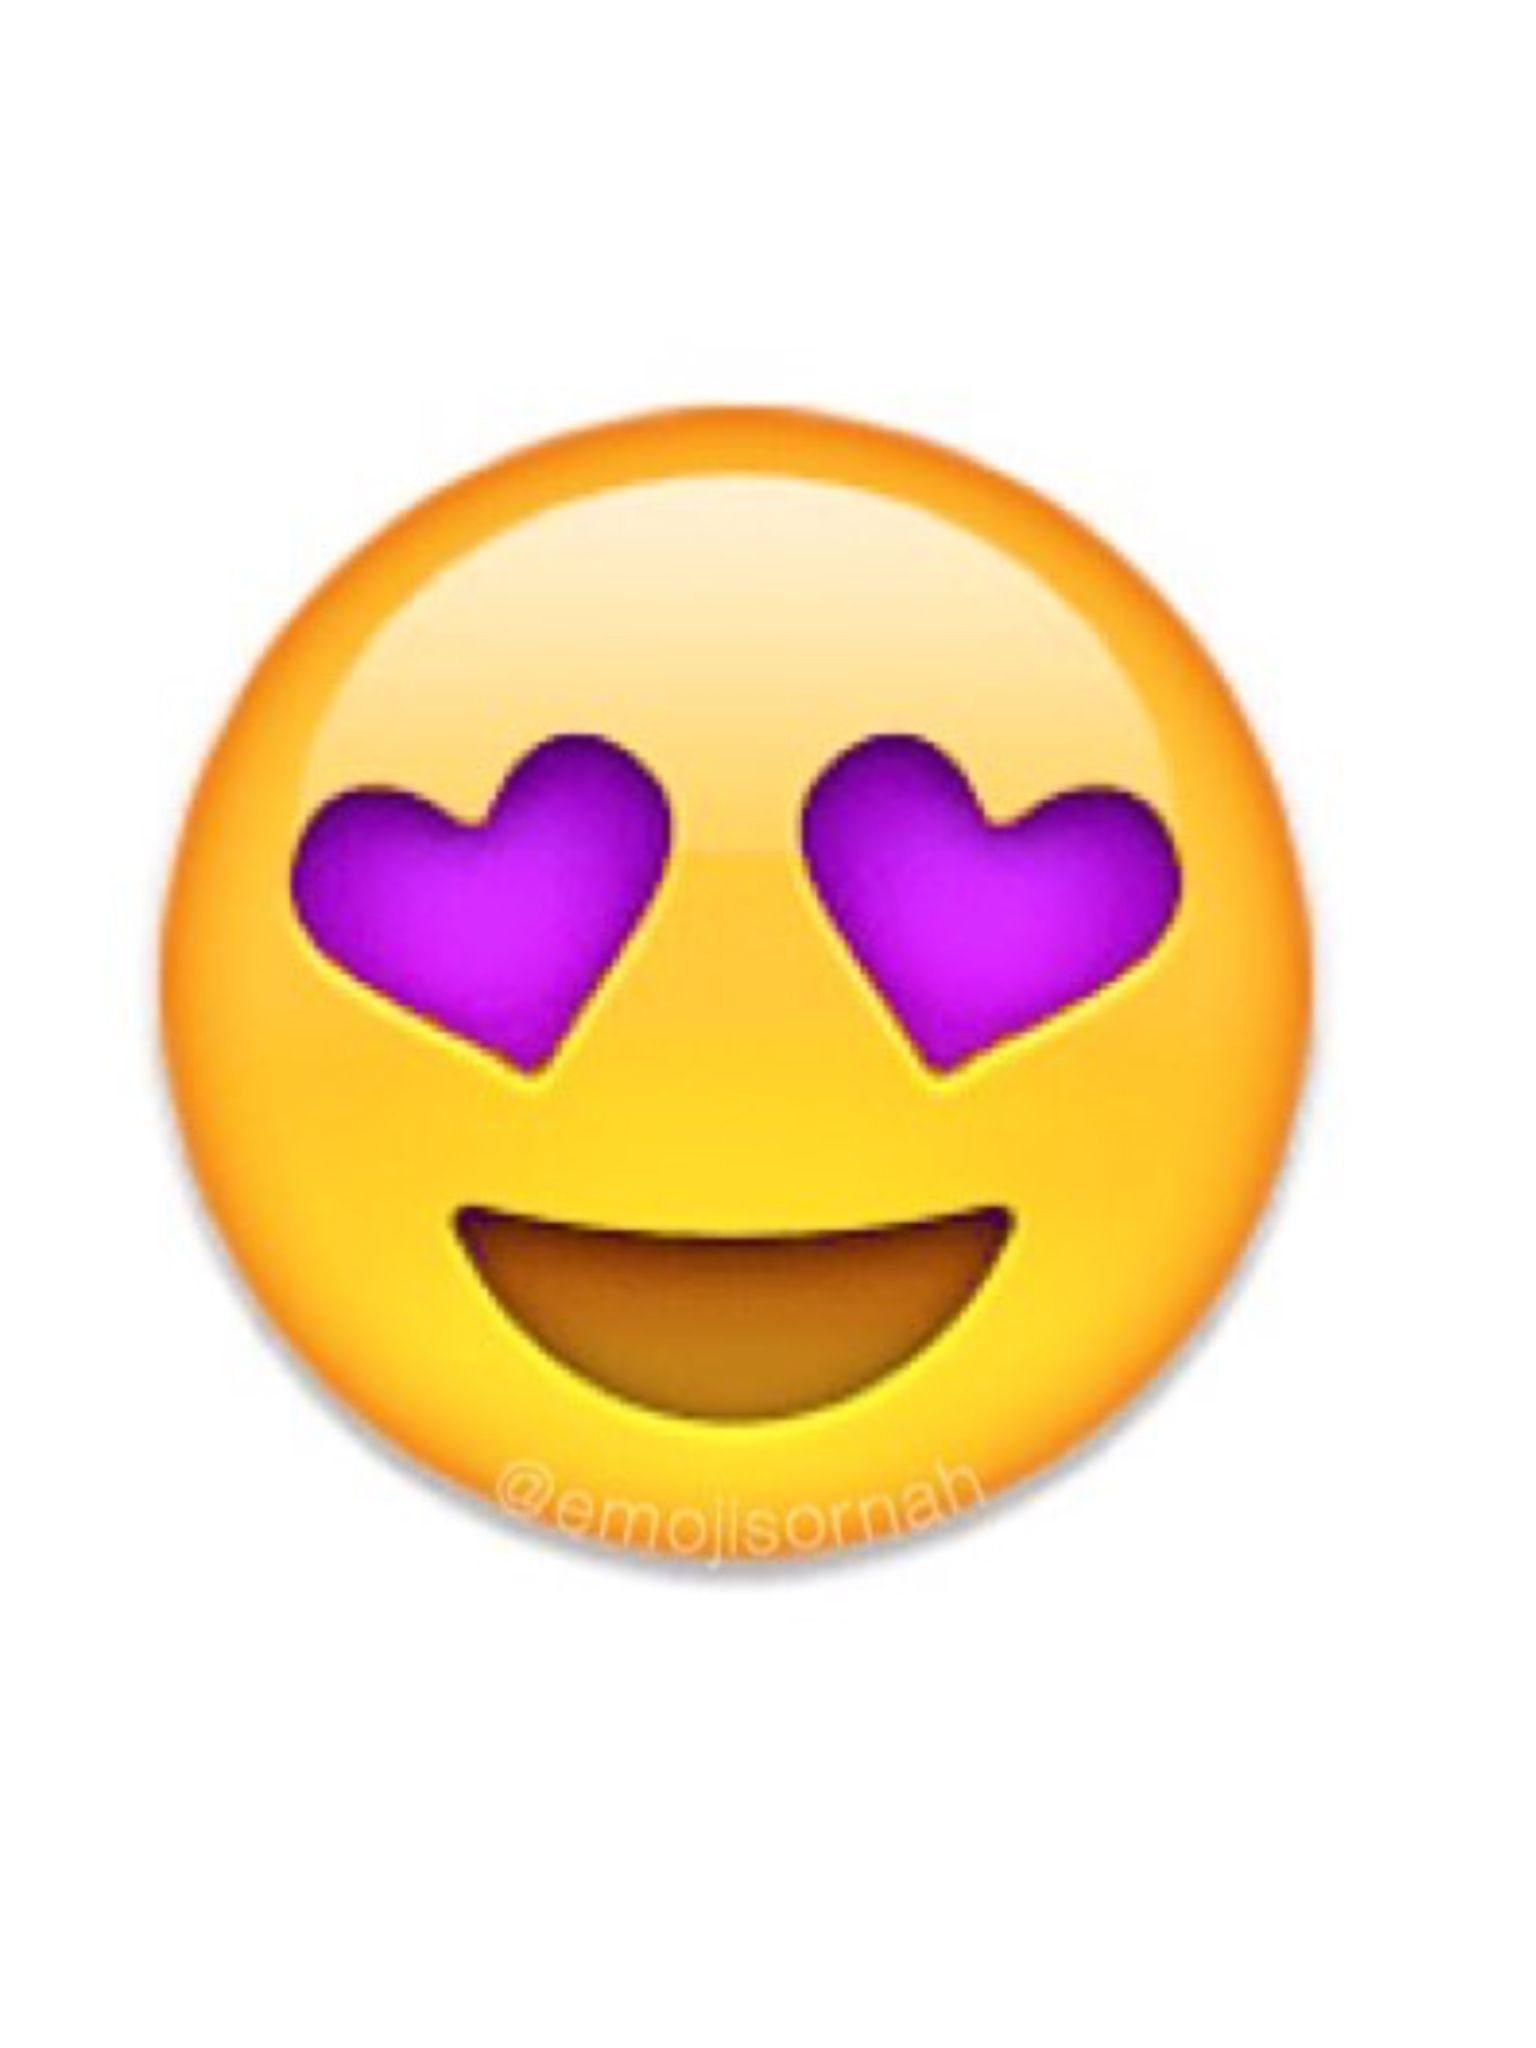 i want this as an emoji